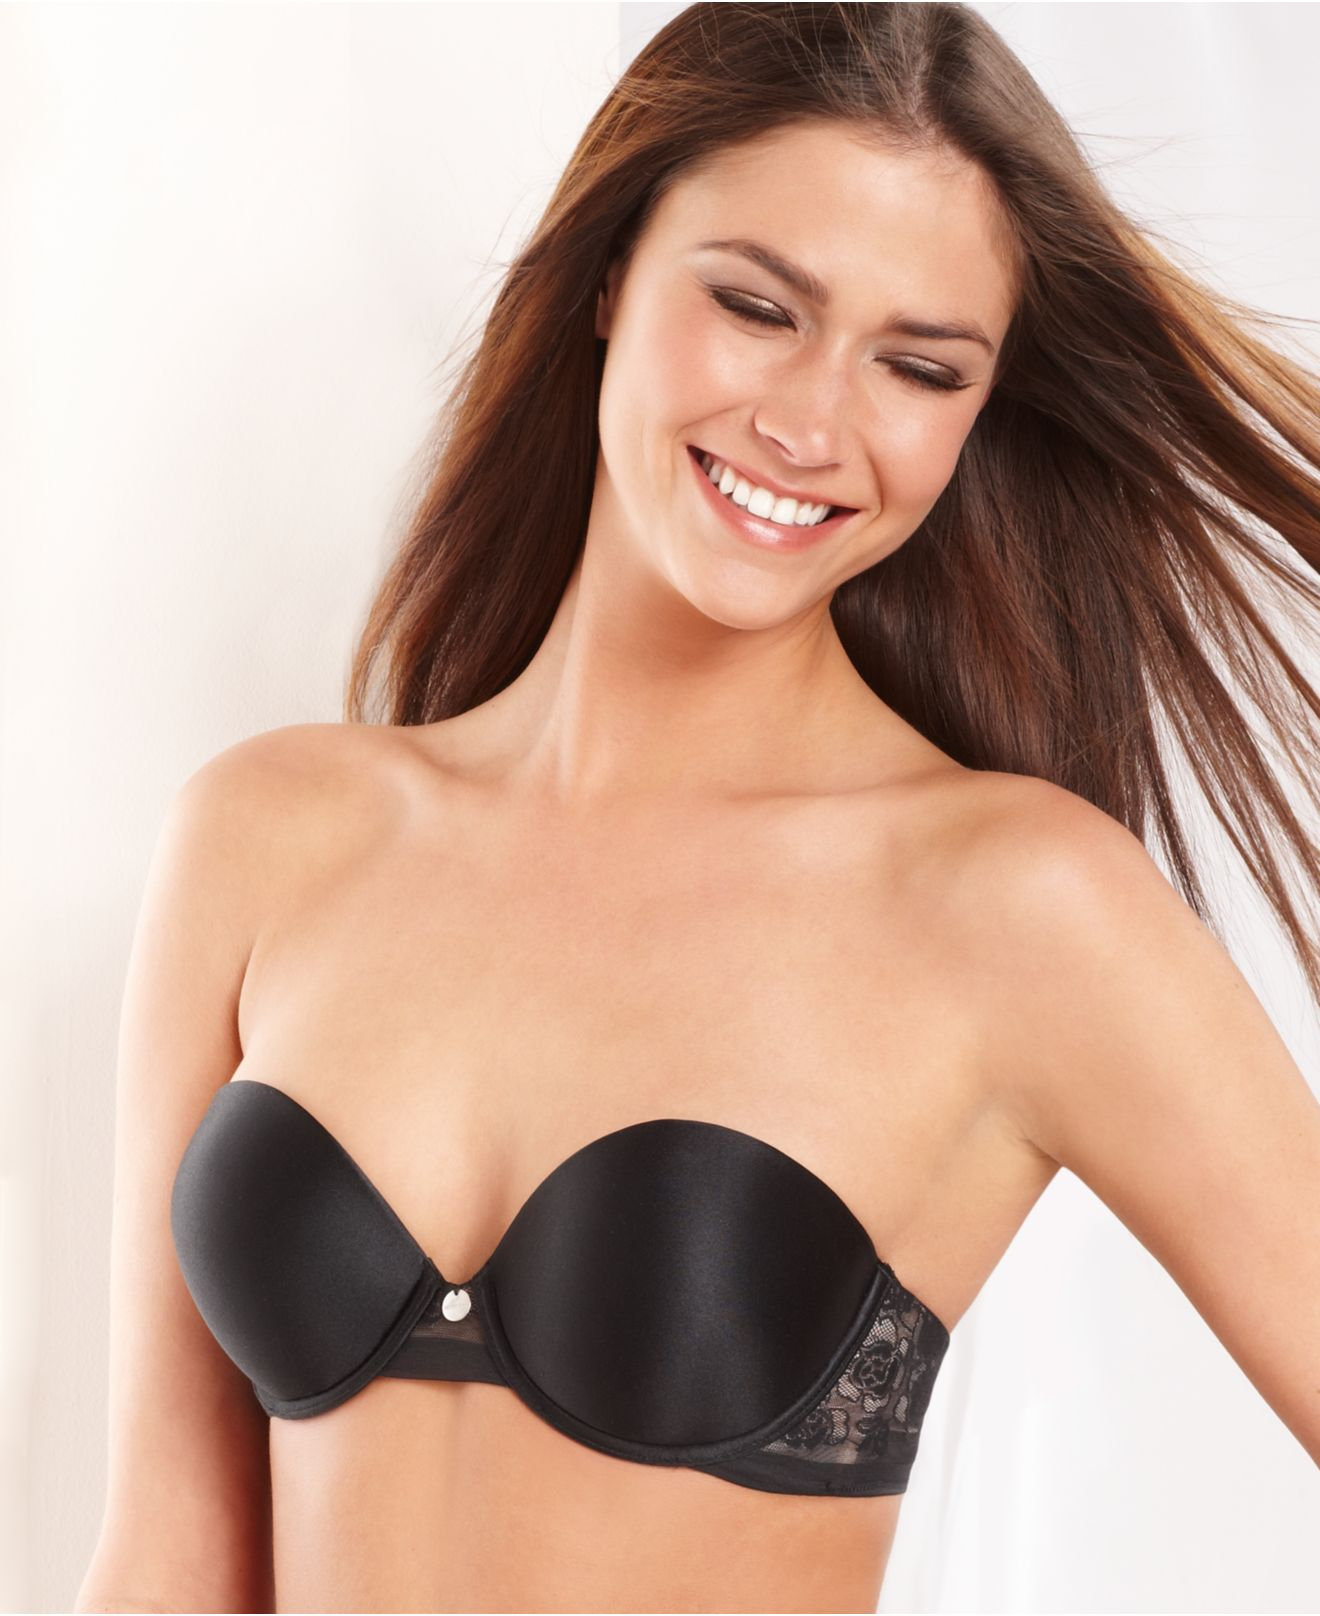 Dkny Super Glam Add 2 Cup Sizes Push Up Bra 458111 In